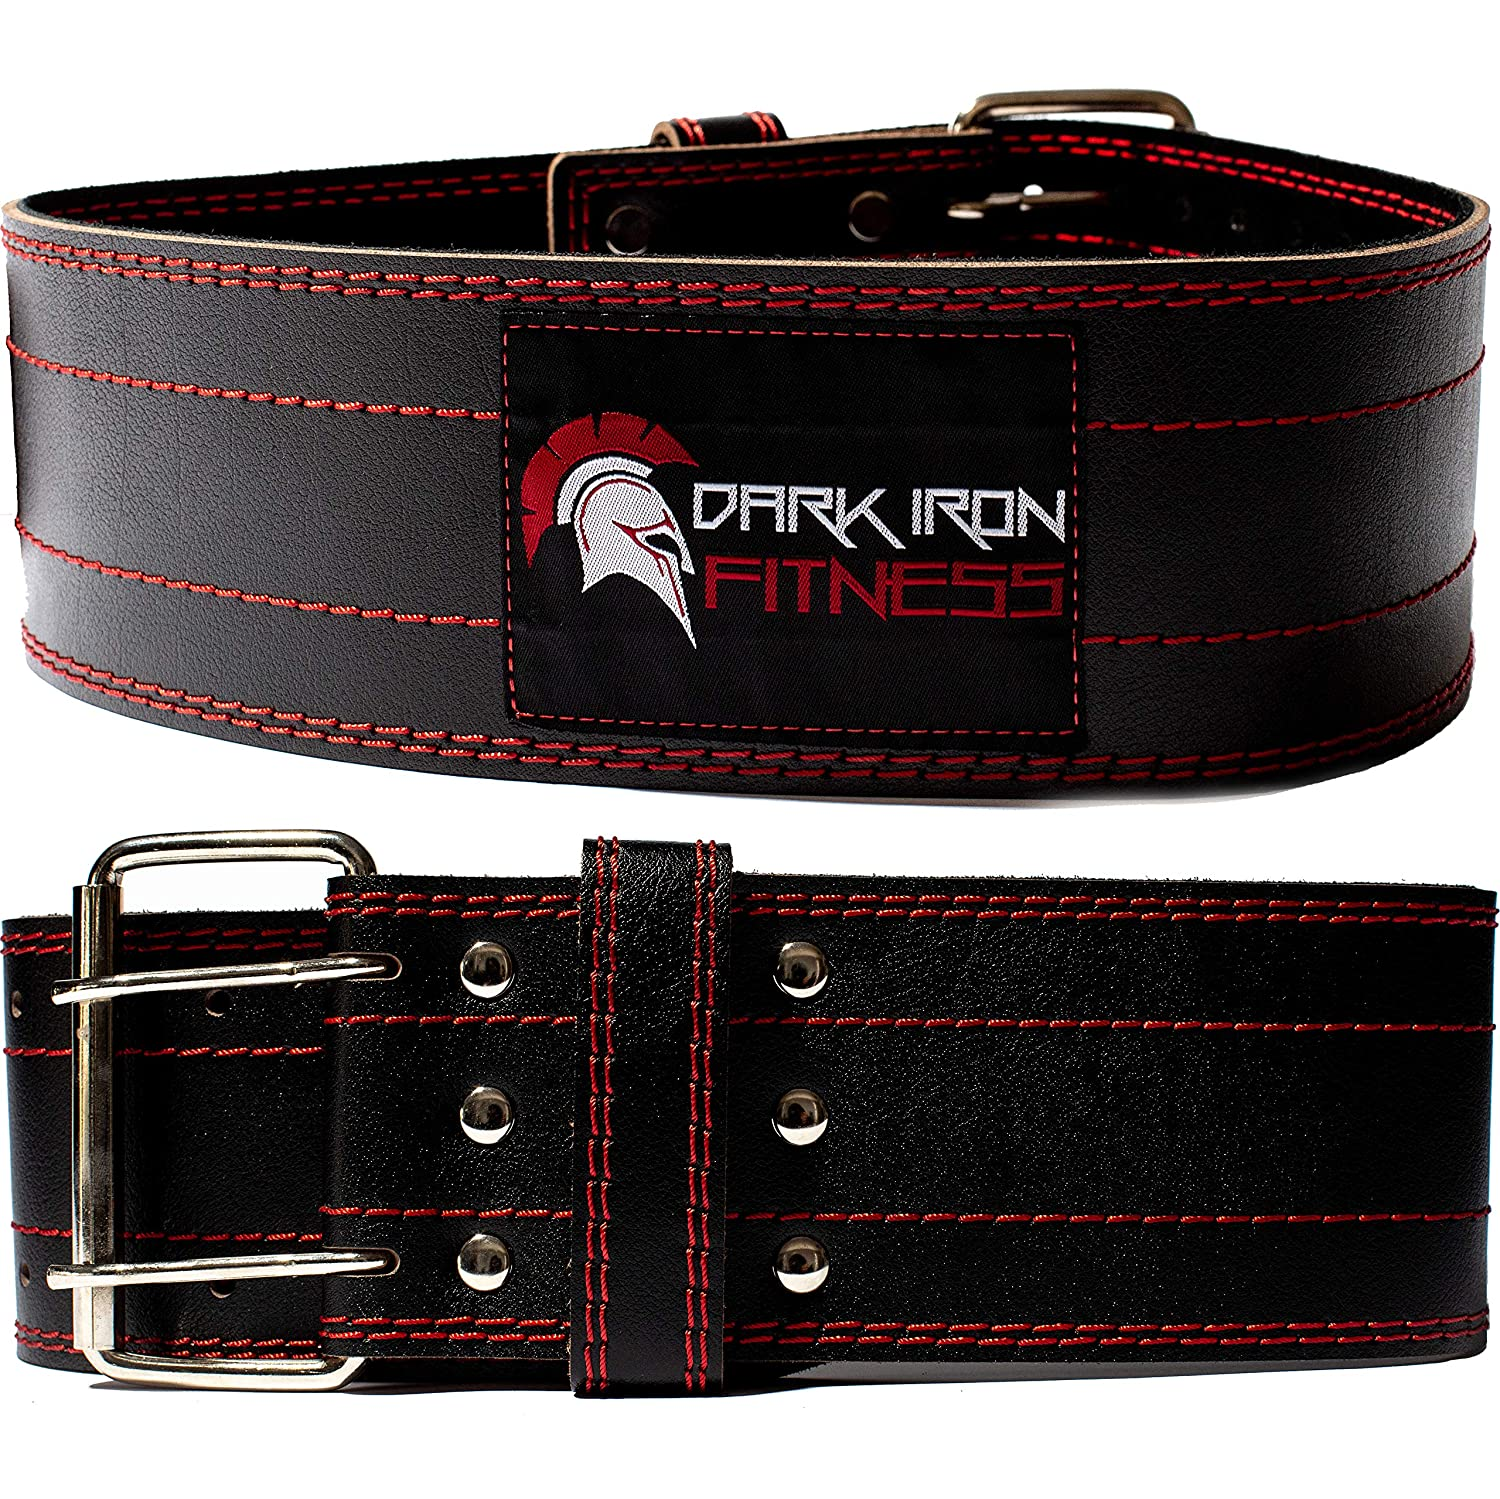 Dark Iron Fitness Genuine Leather Pro Weight Lifting Belt for Men and Women